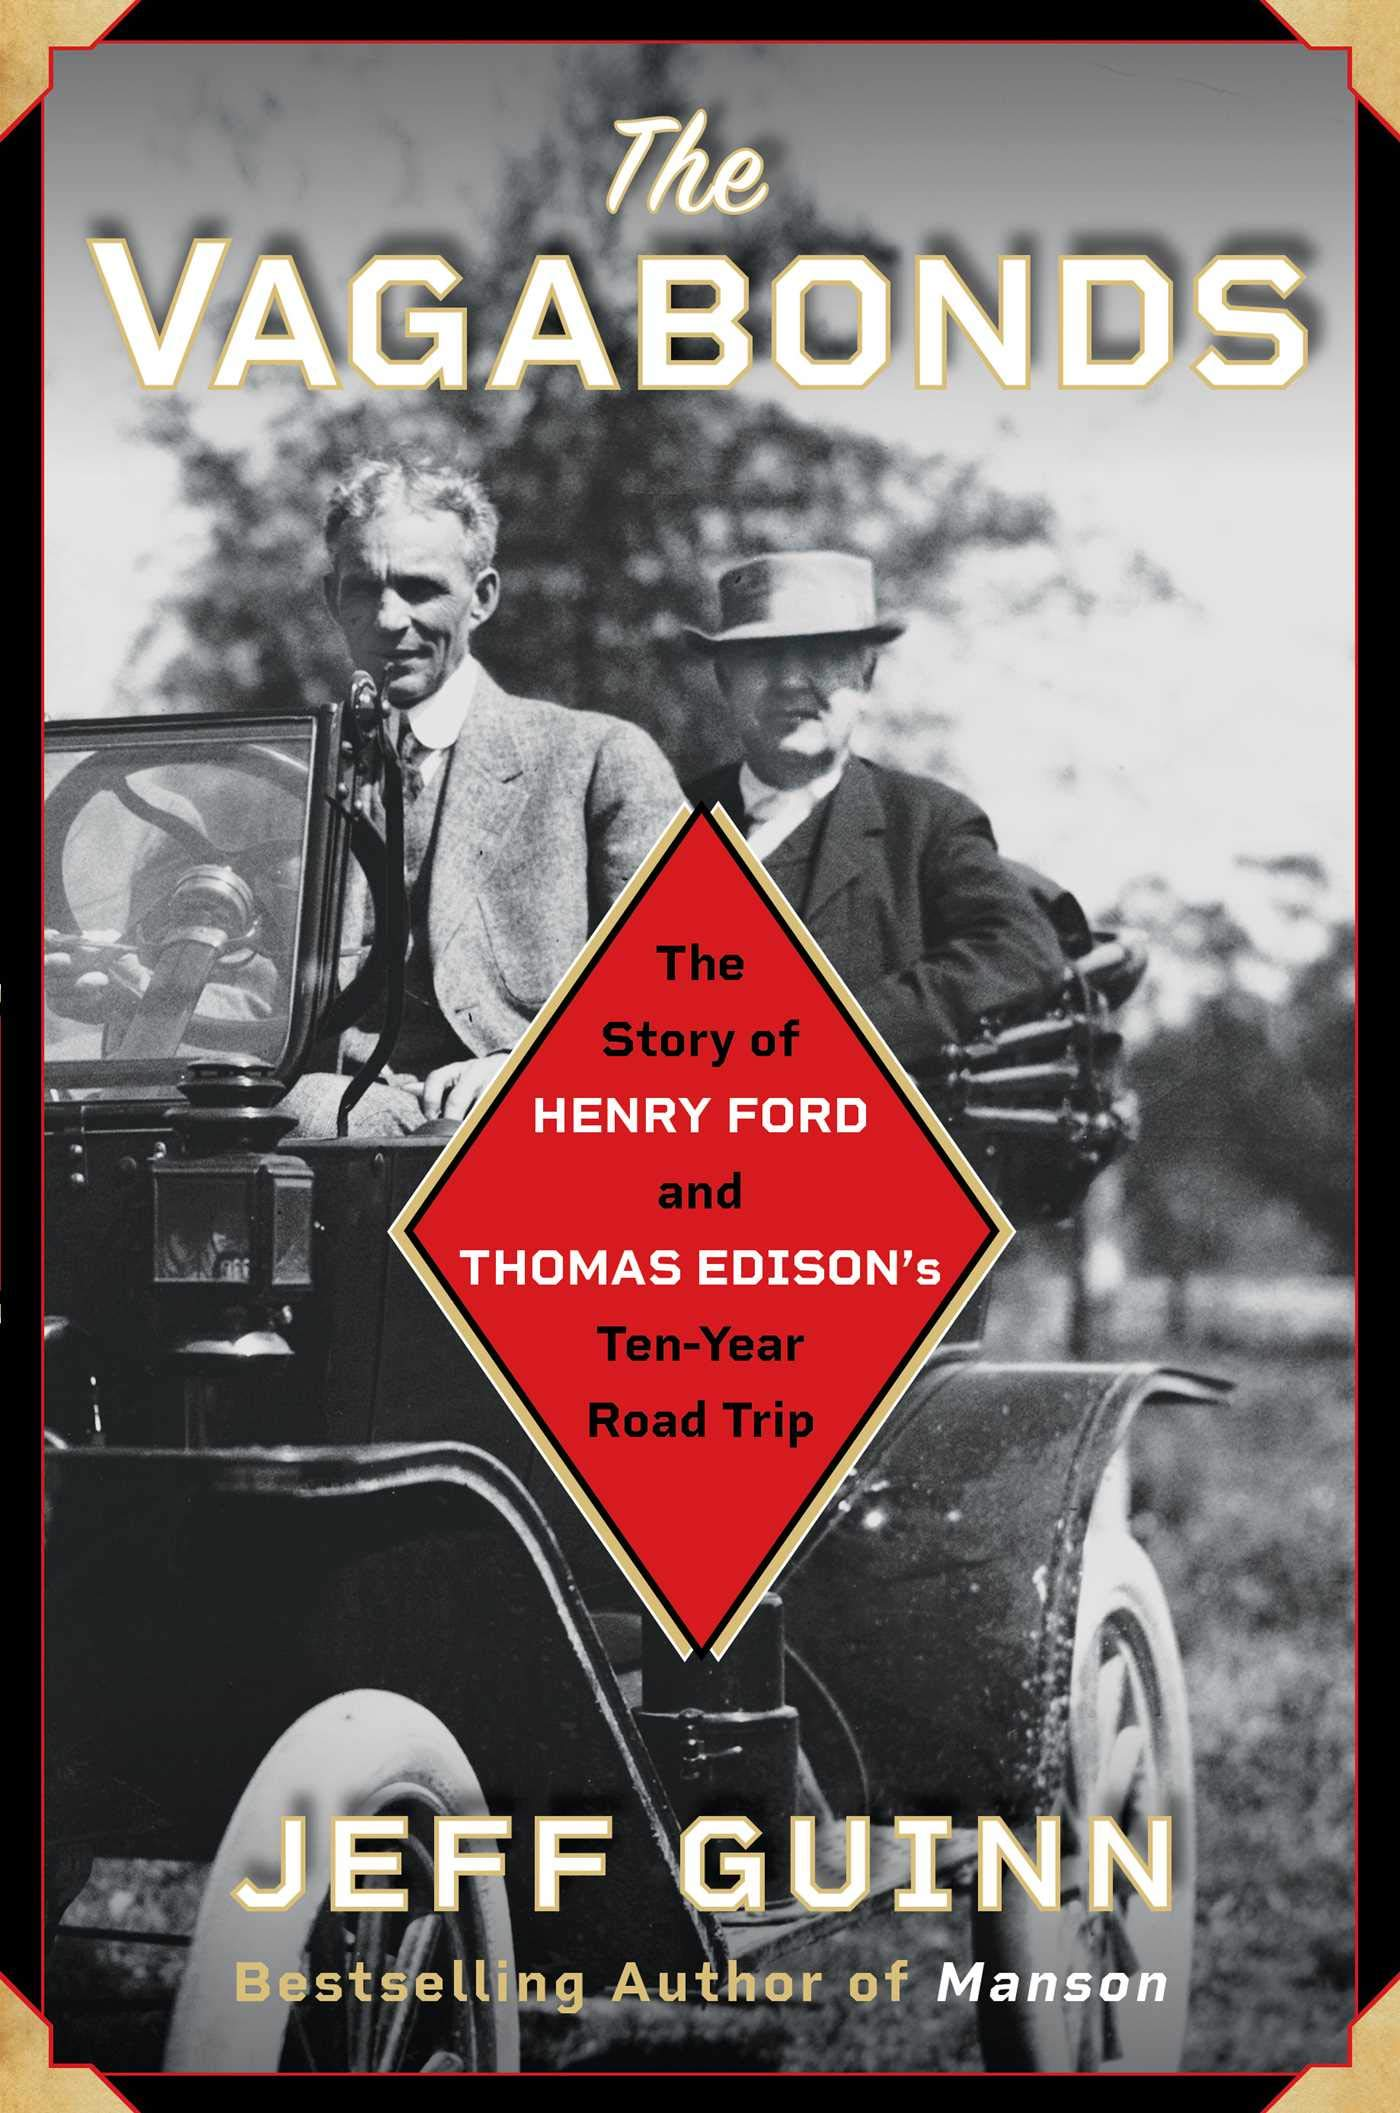 The Vagabonds: The Story of Henry Ford and Thomas Edison's